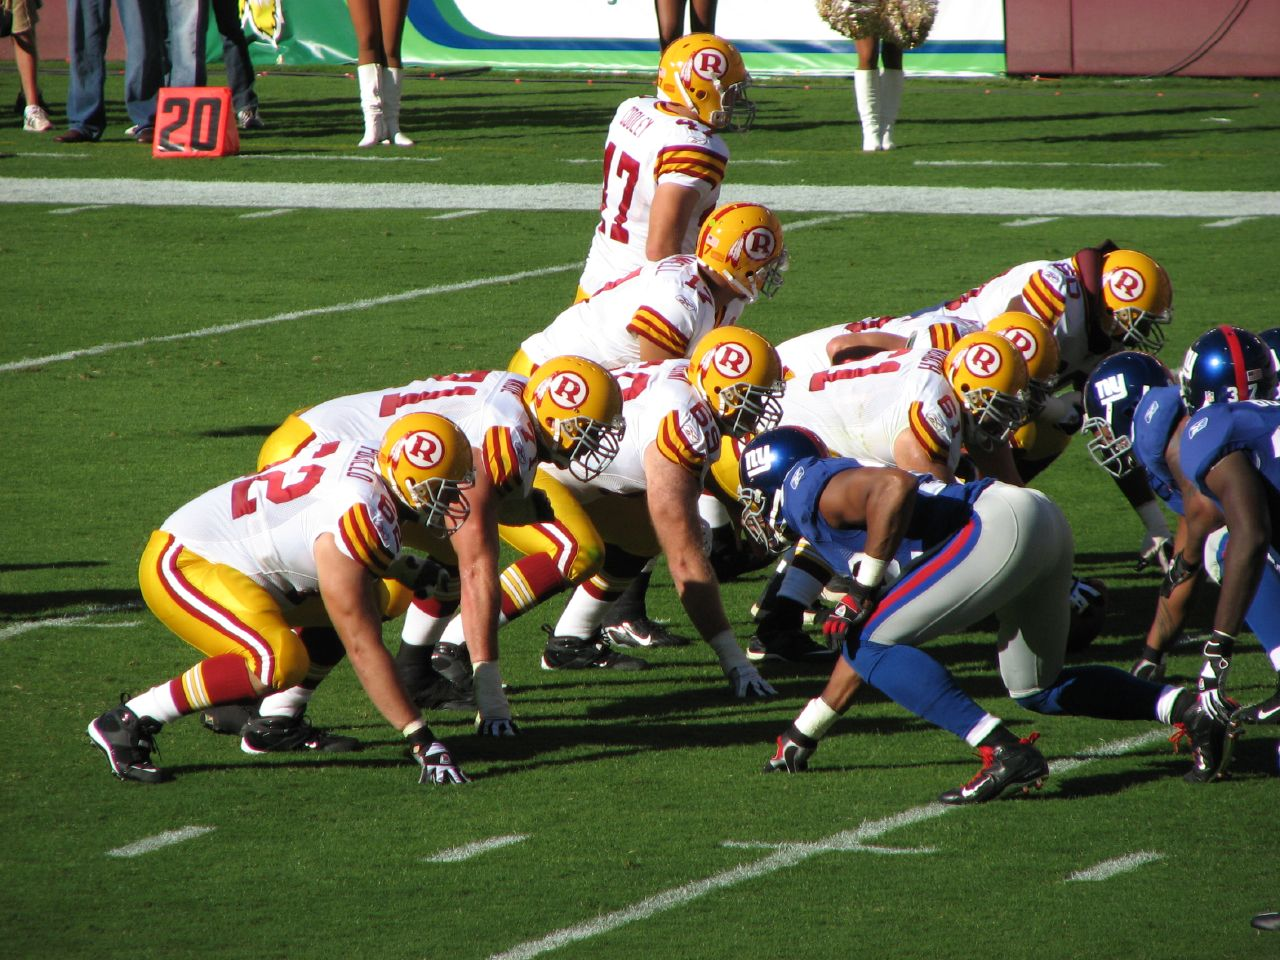 Redskins_vs_Giants_line_of_scrimmage_throwbacks.jpg